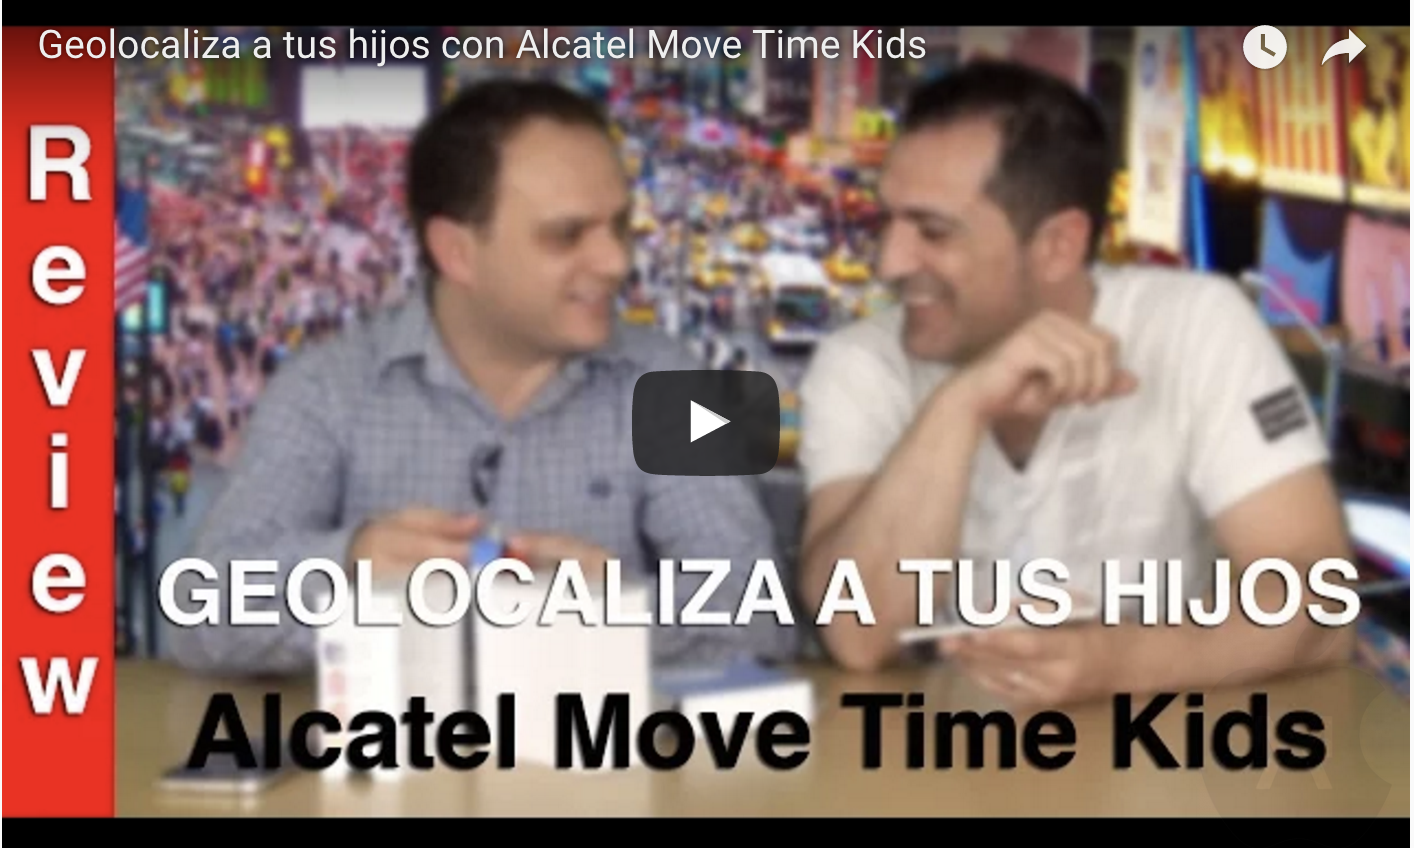 Alcatel Move Time Kids